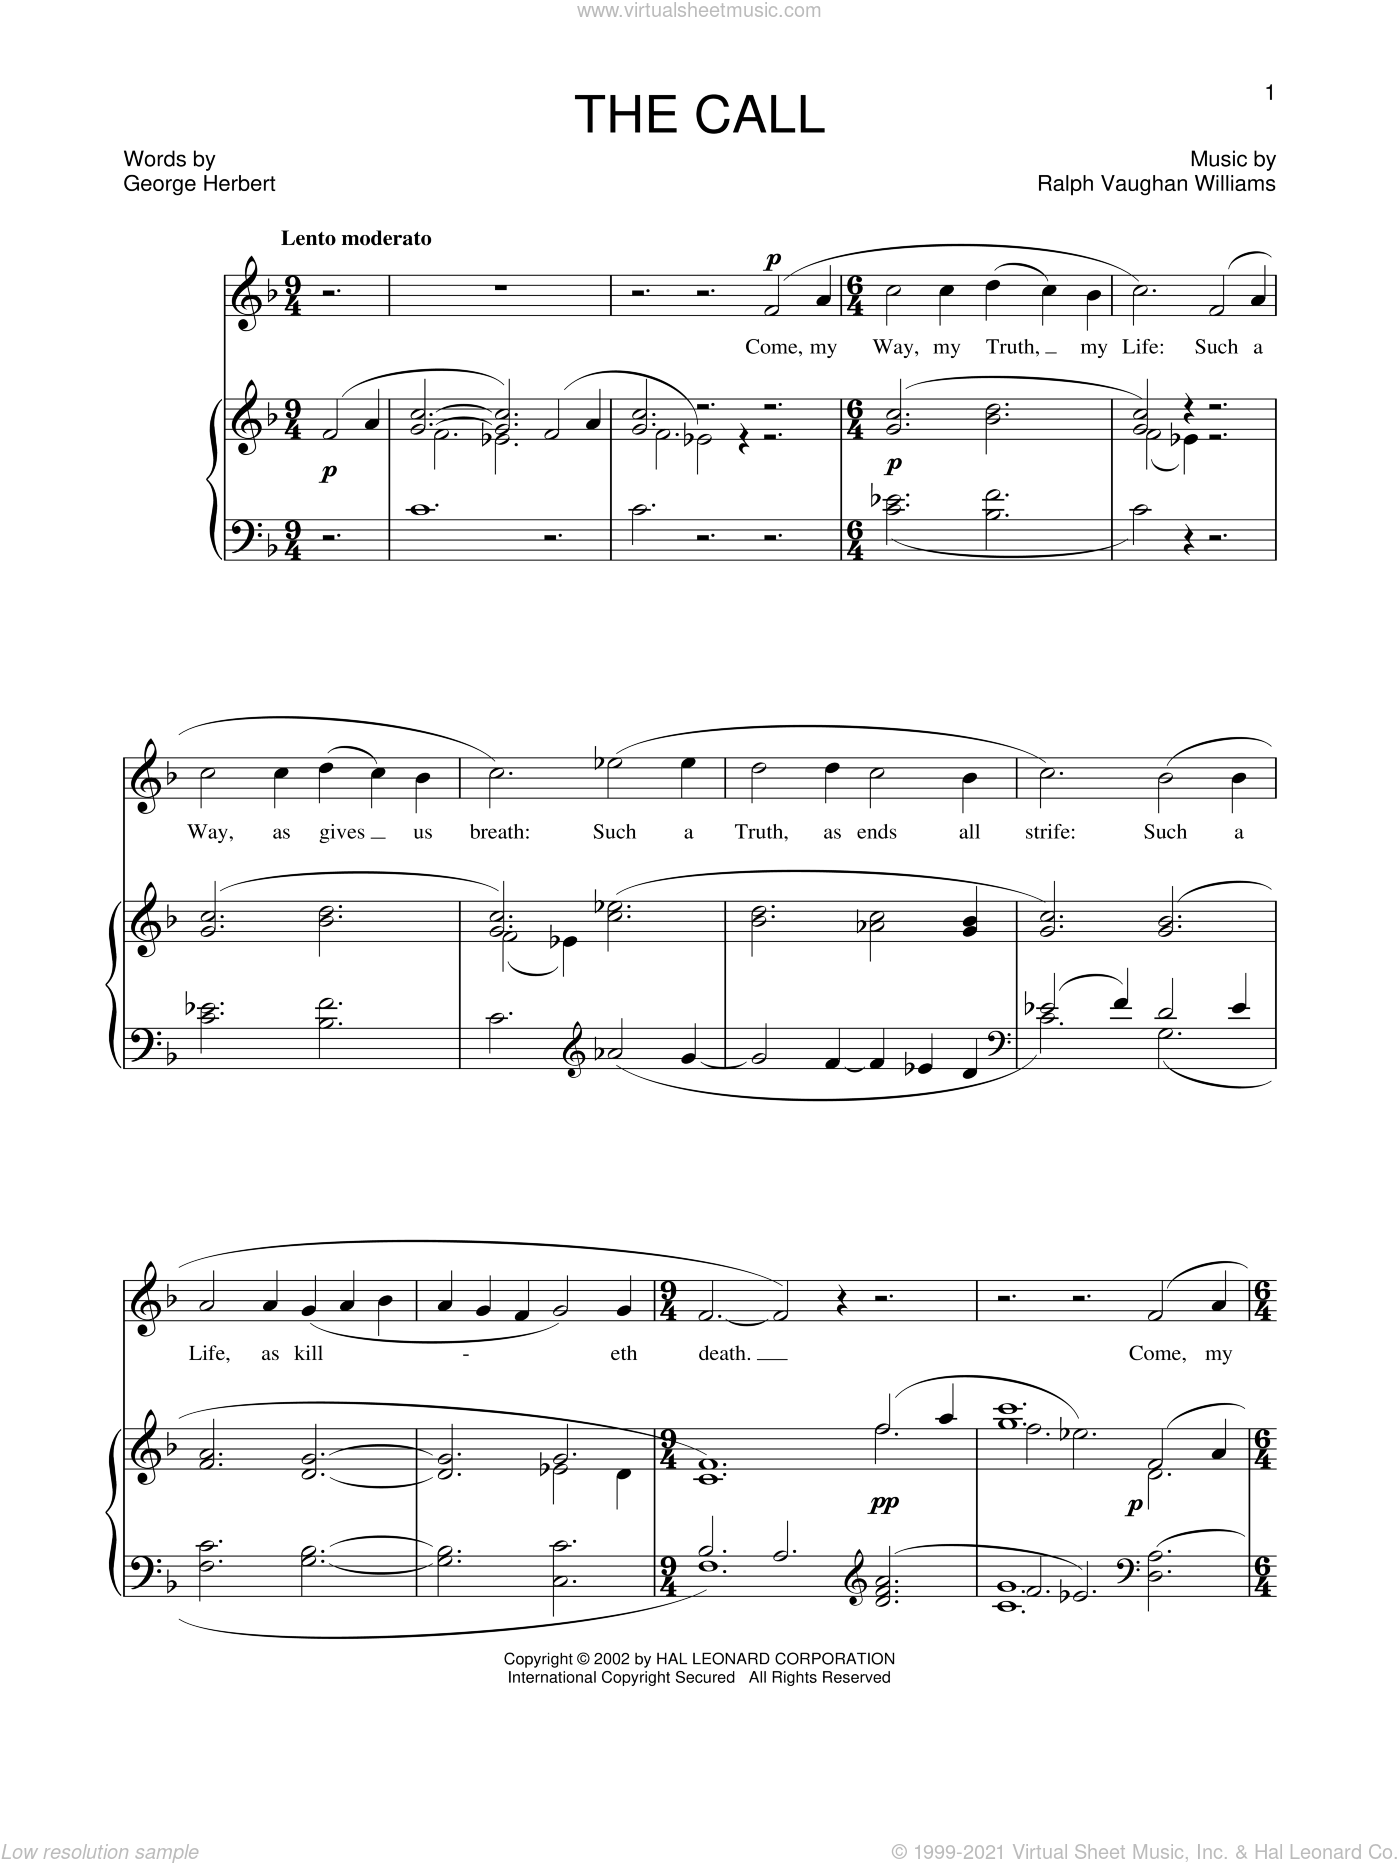 The Call sheet music for voice and piano by Ralph Vaughan Williams